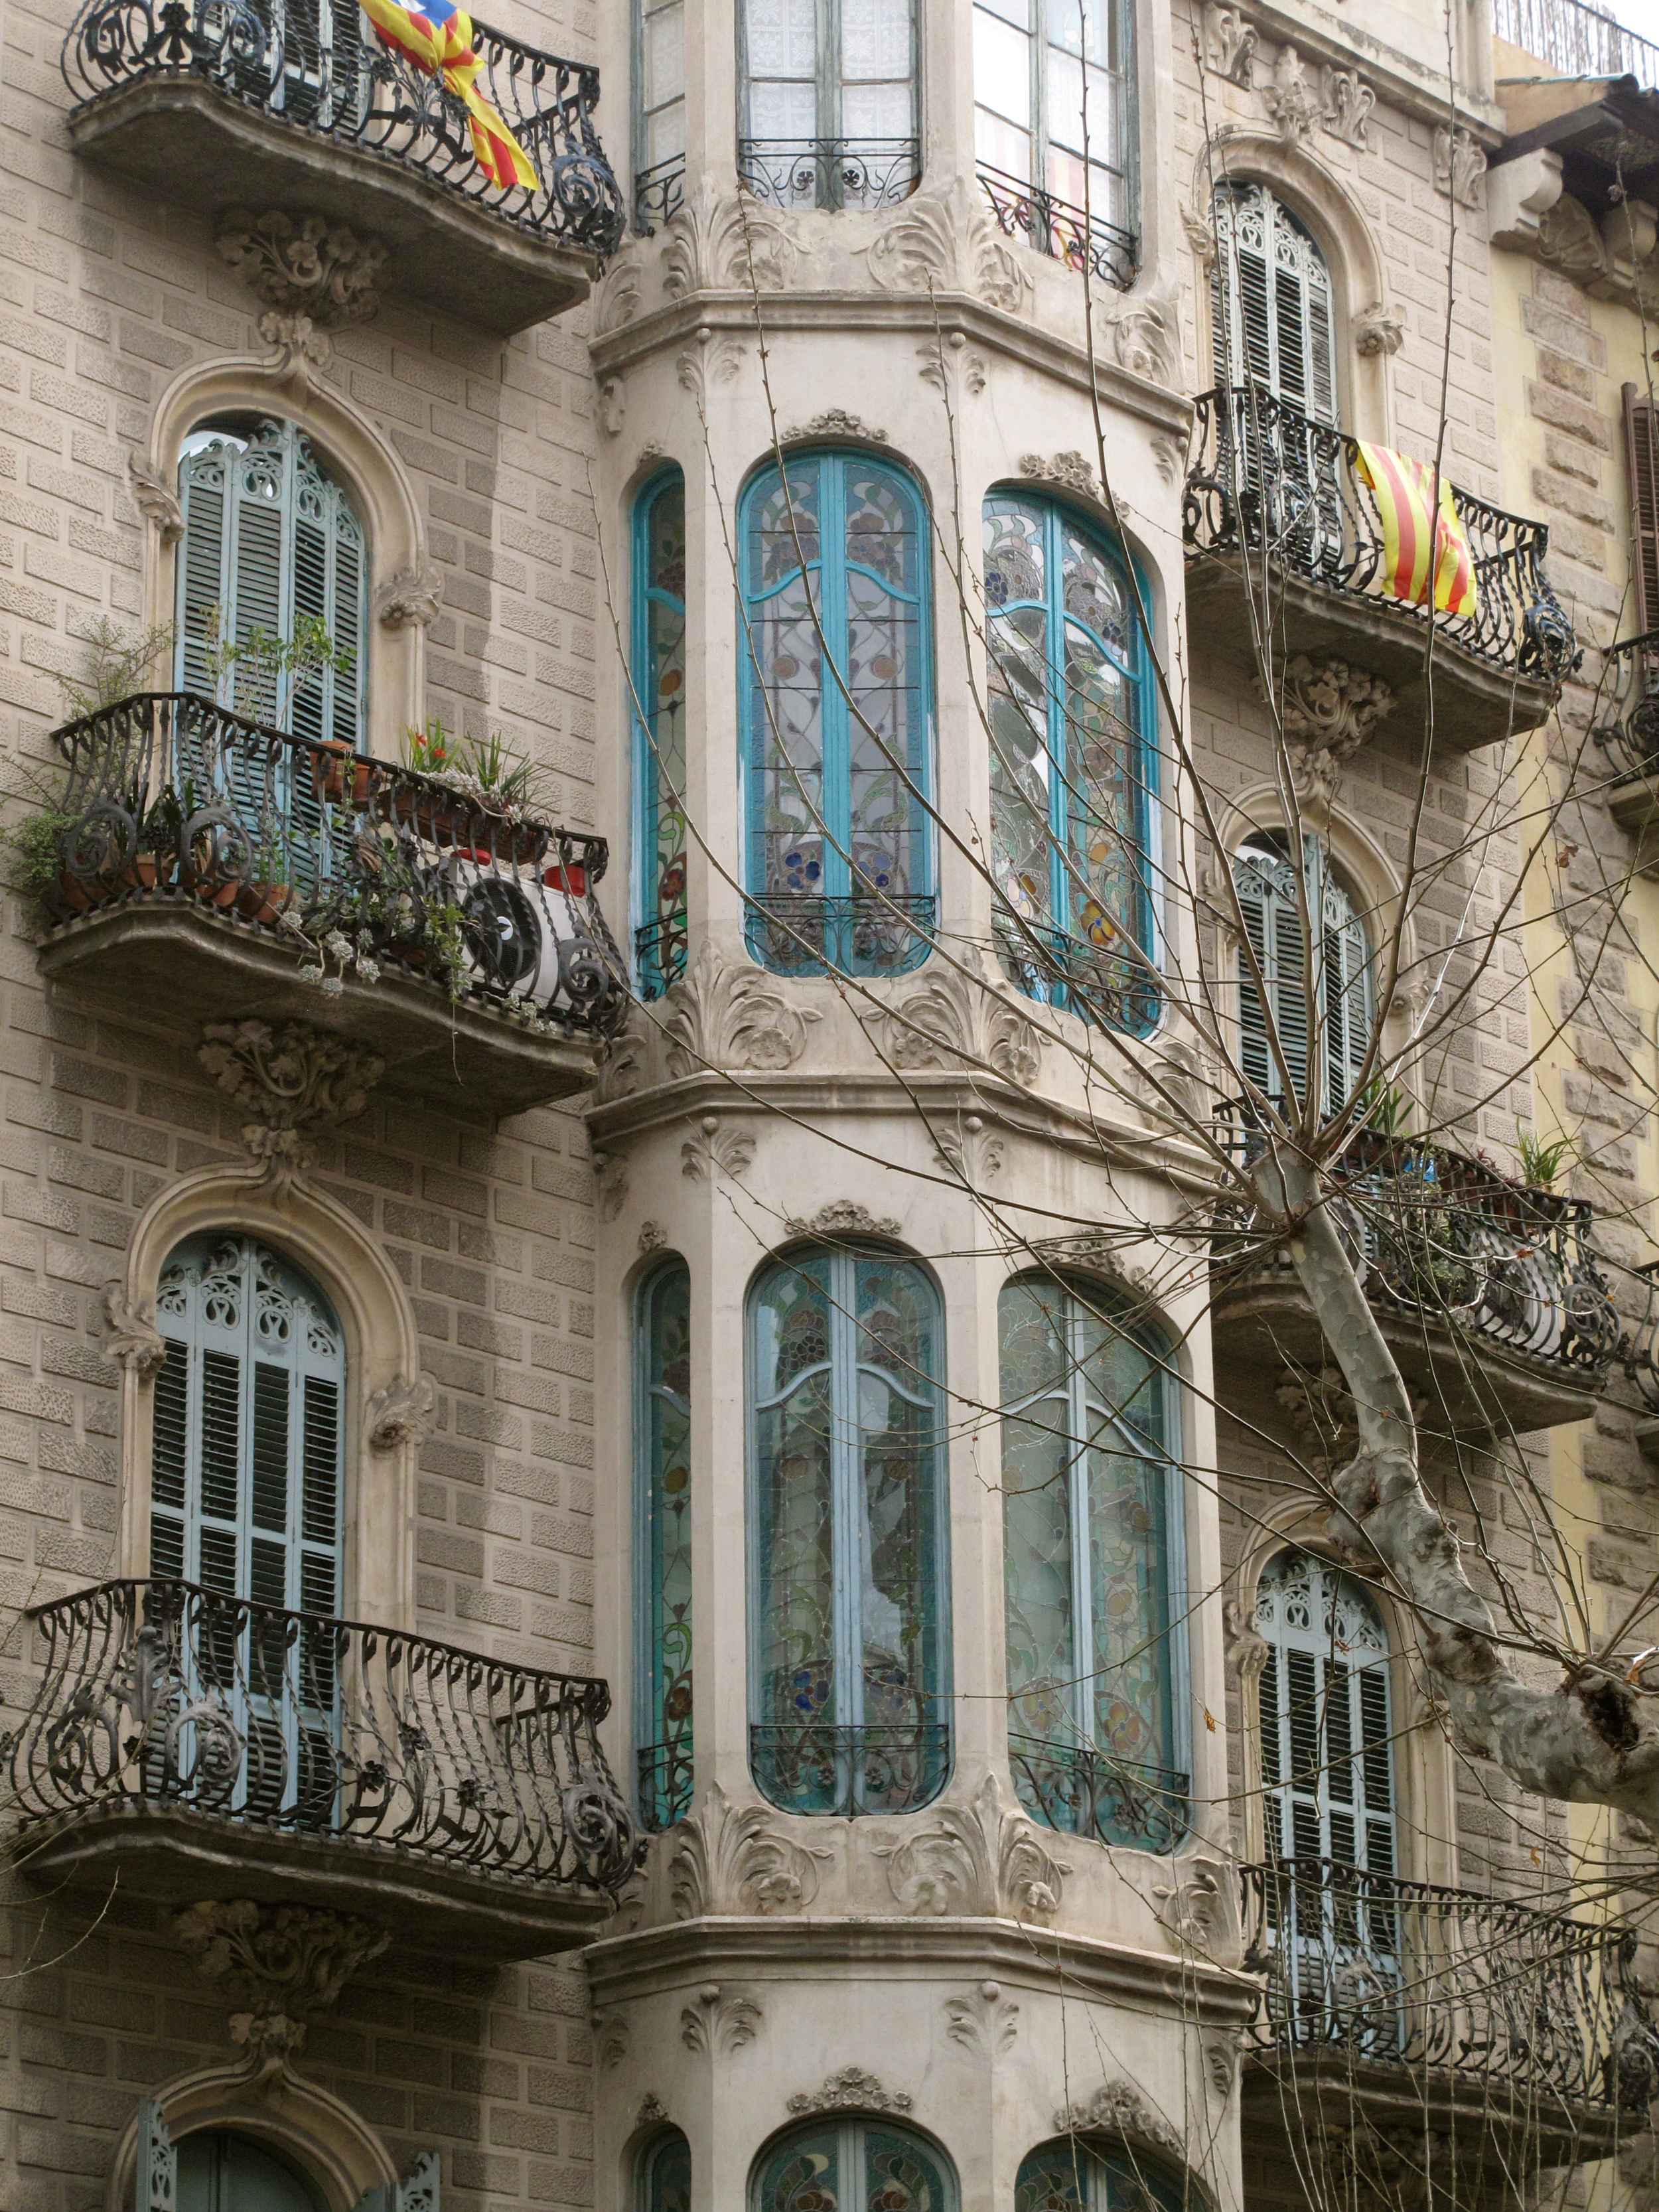 Windows of buildings in Barcelona